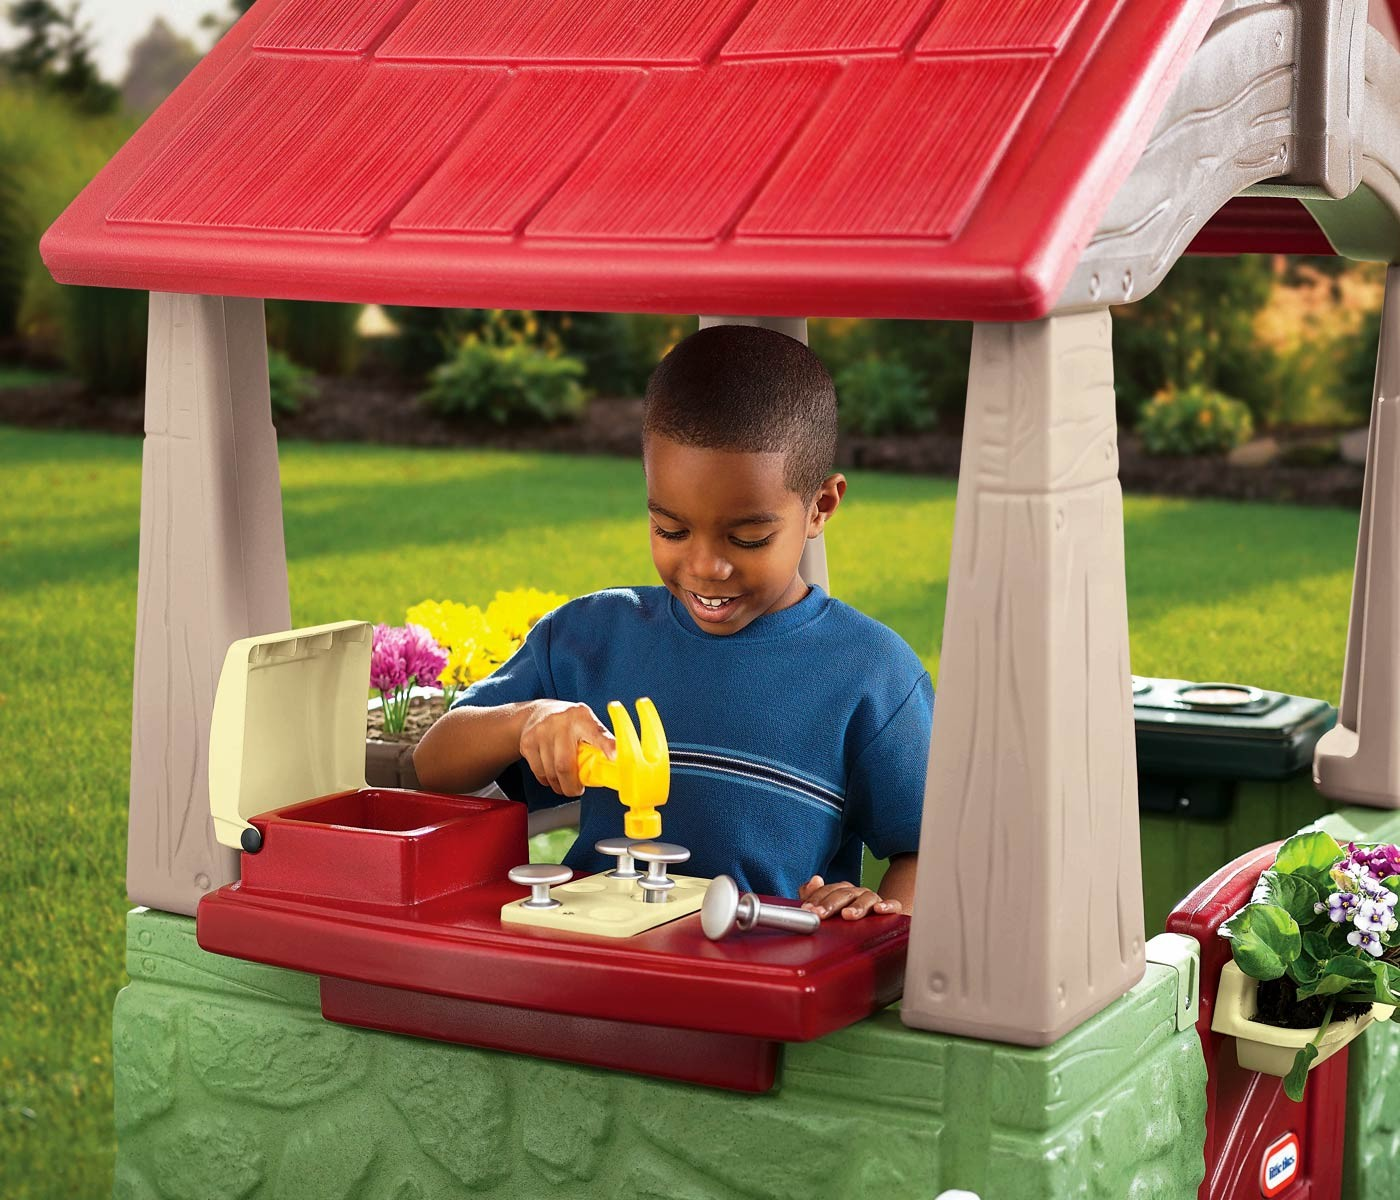 Awesome Little Tikes Playhouse Made Of Plastic With Red Roof For Chic Playground Decor Ideas